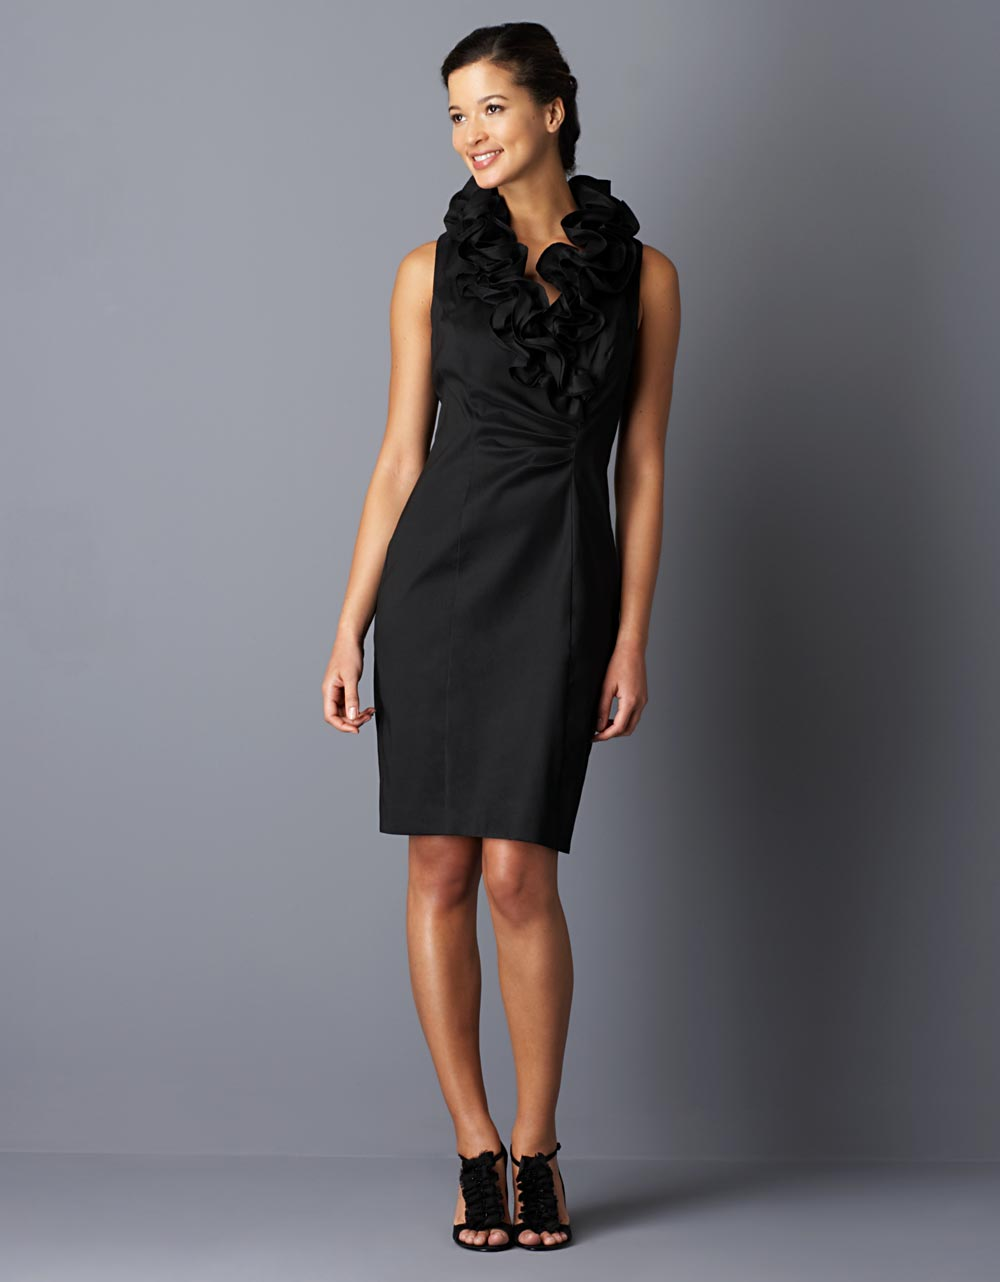 59fae2c46c6 Xscape Black Dress Lord And Taylor